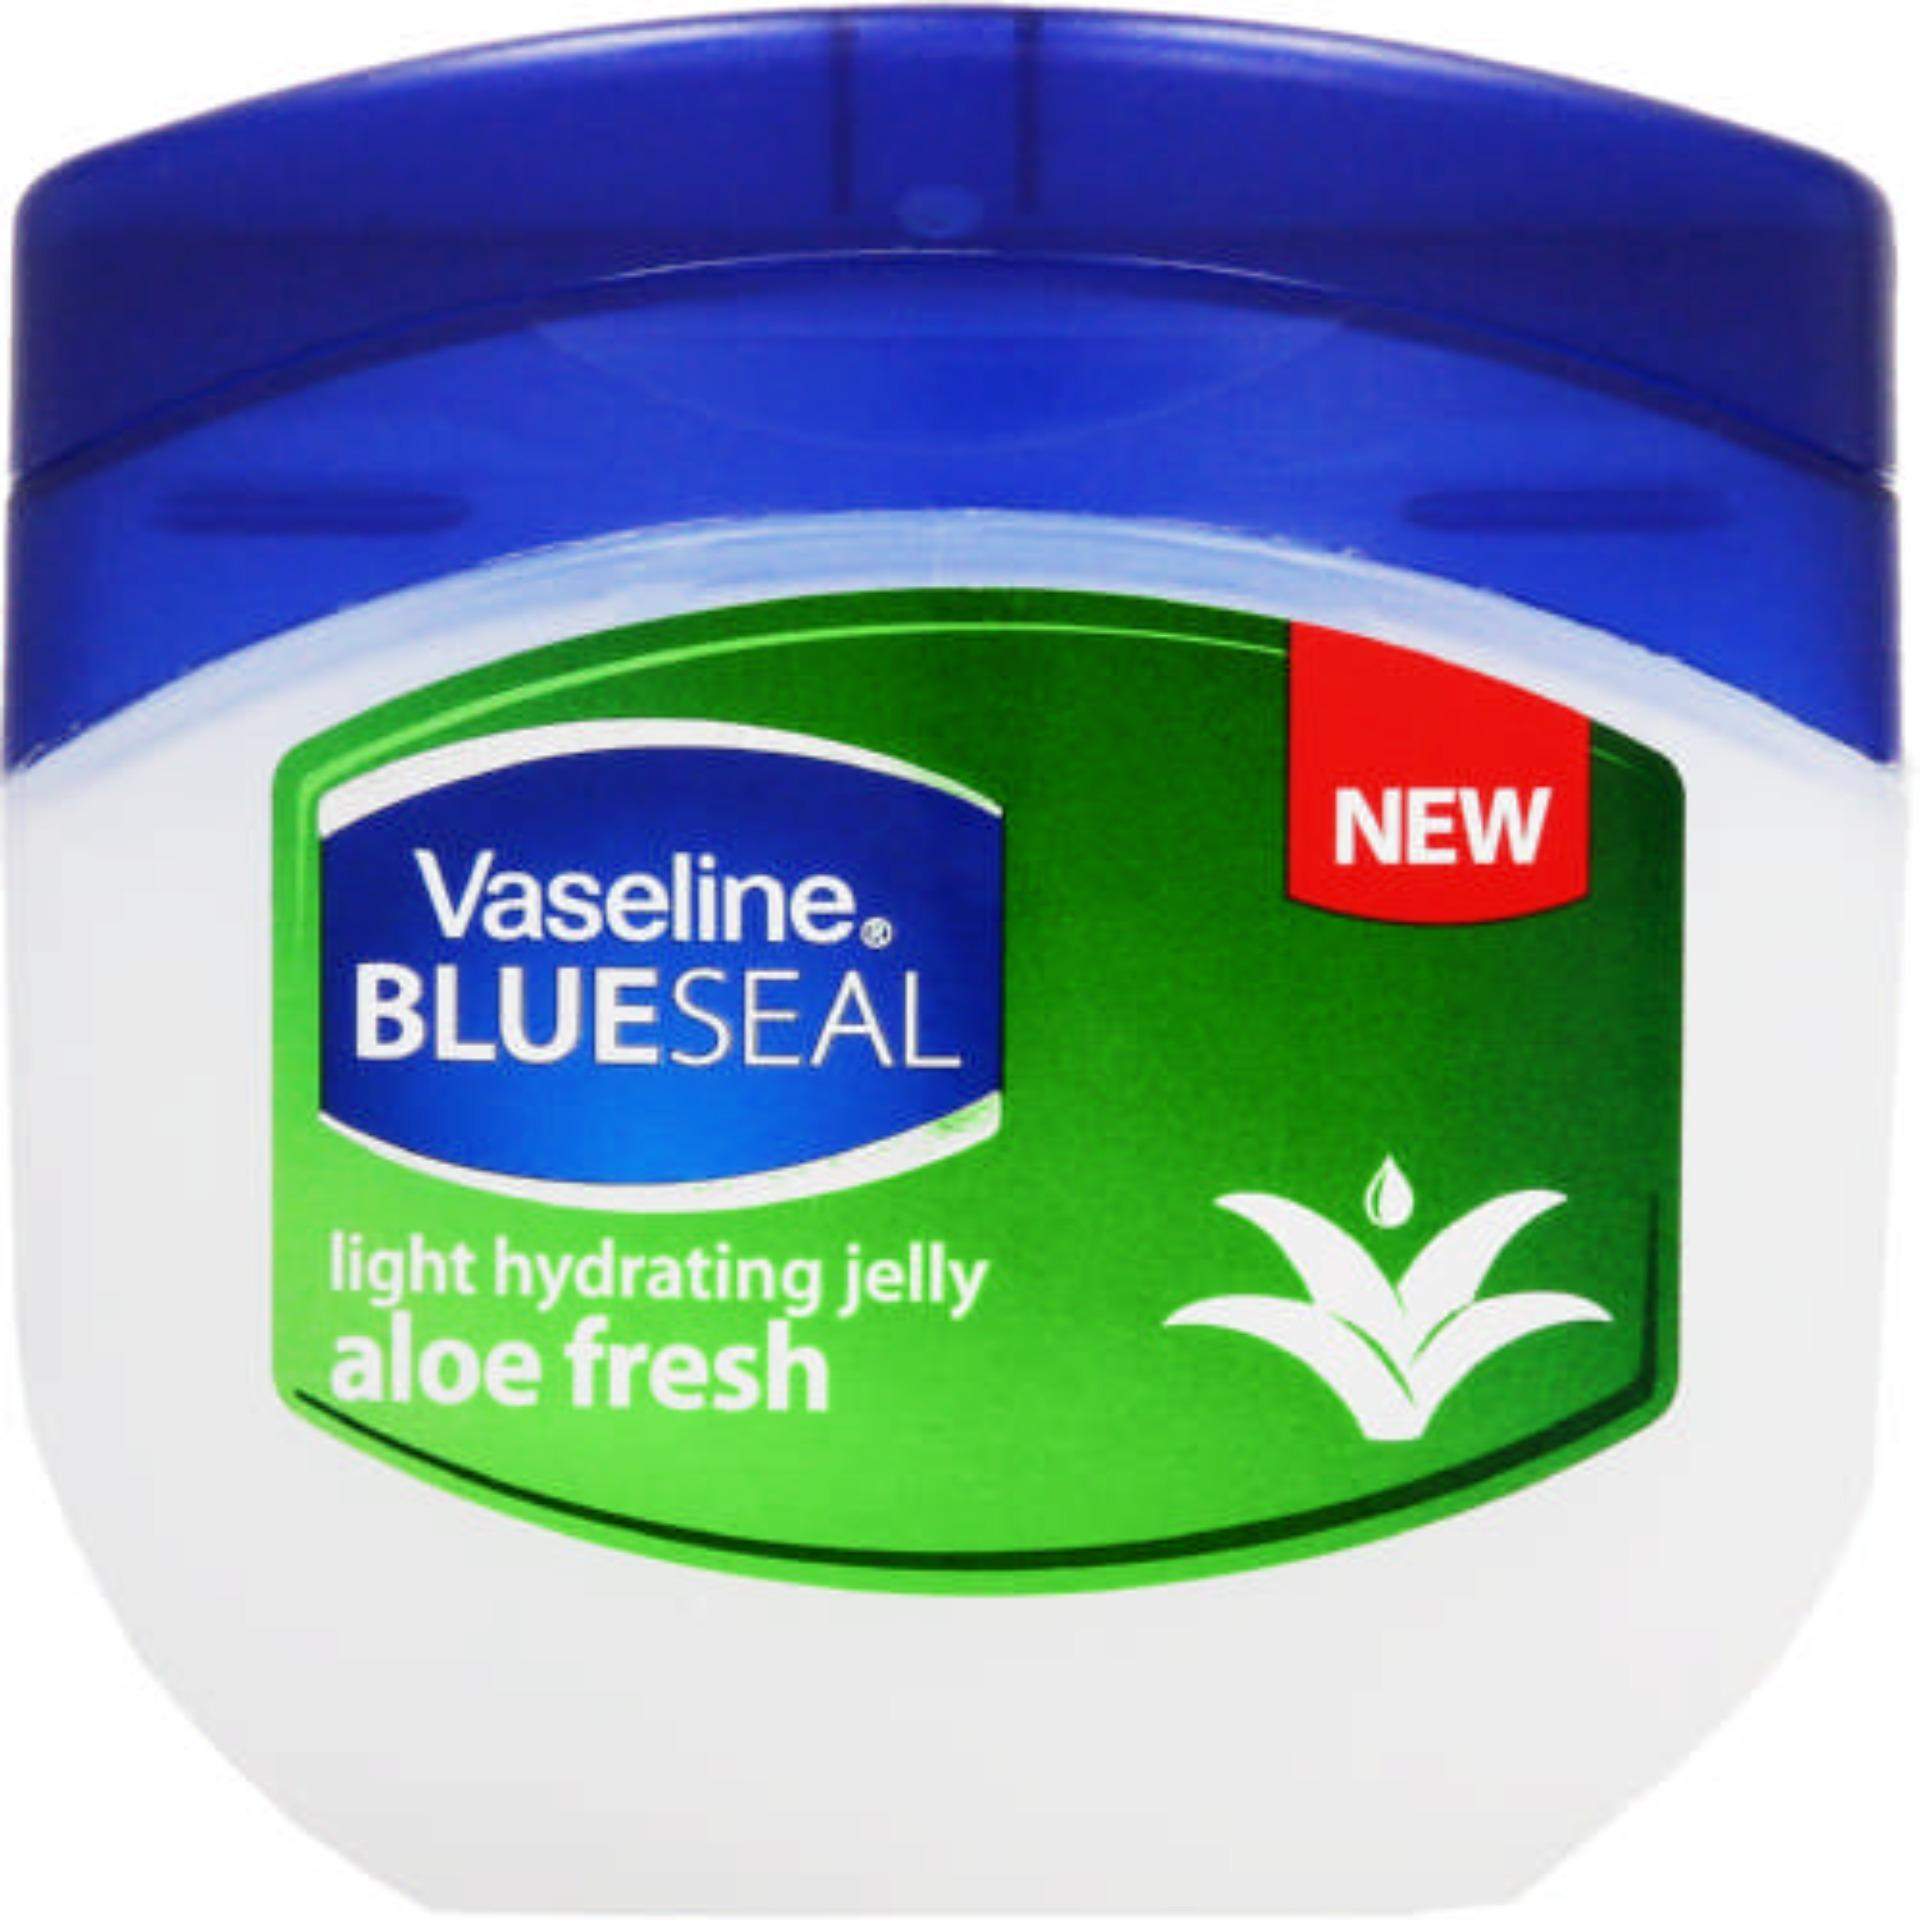 Harga Vaseline 100 Ml Aloe Vera Fresh Petroleum Jelly Vaseline Original